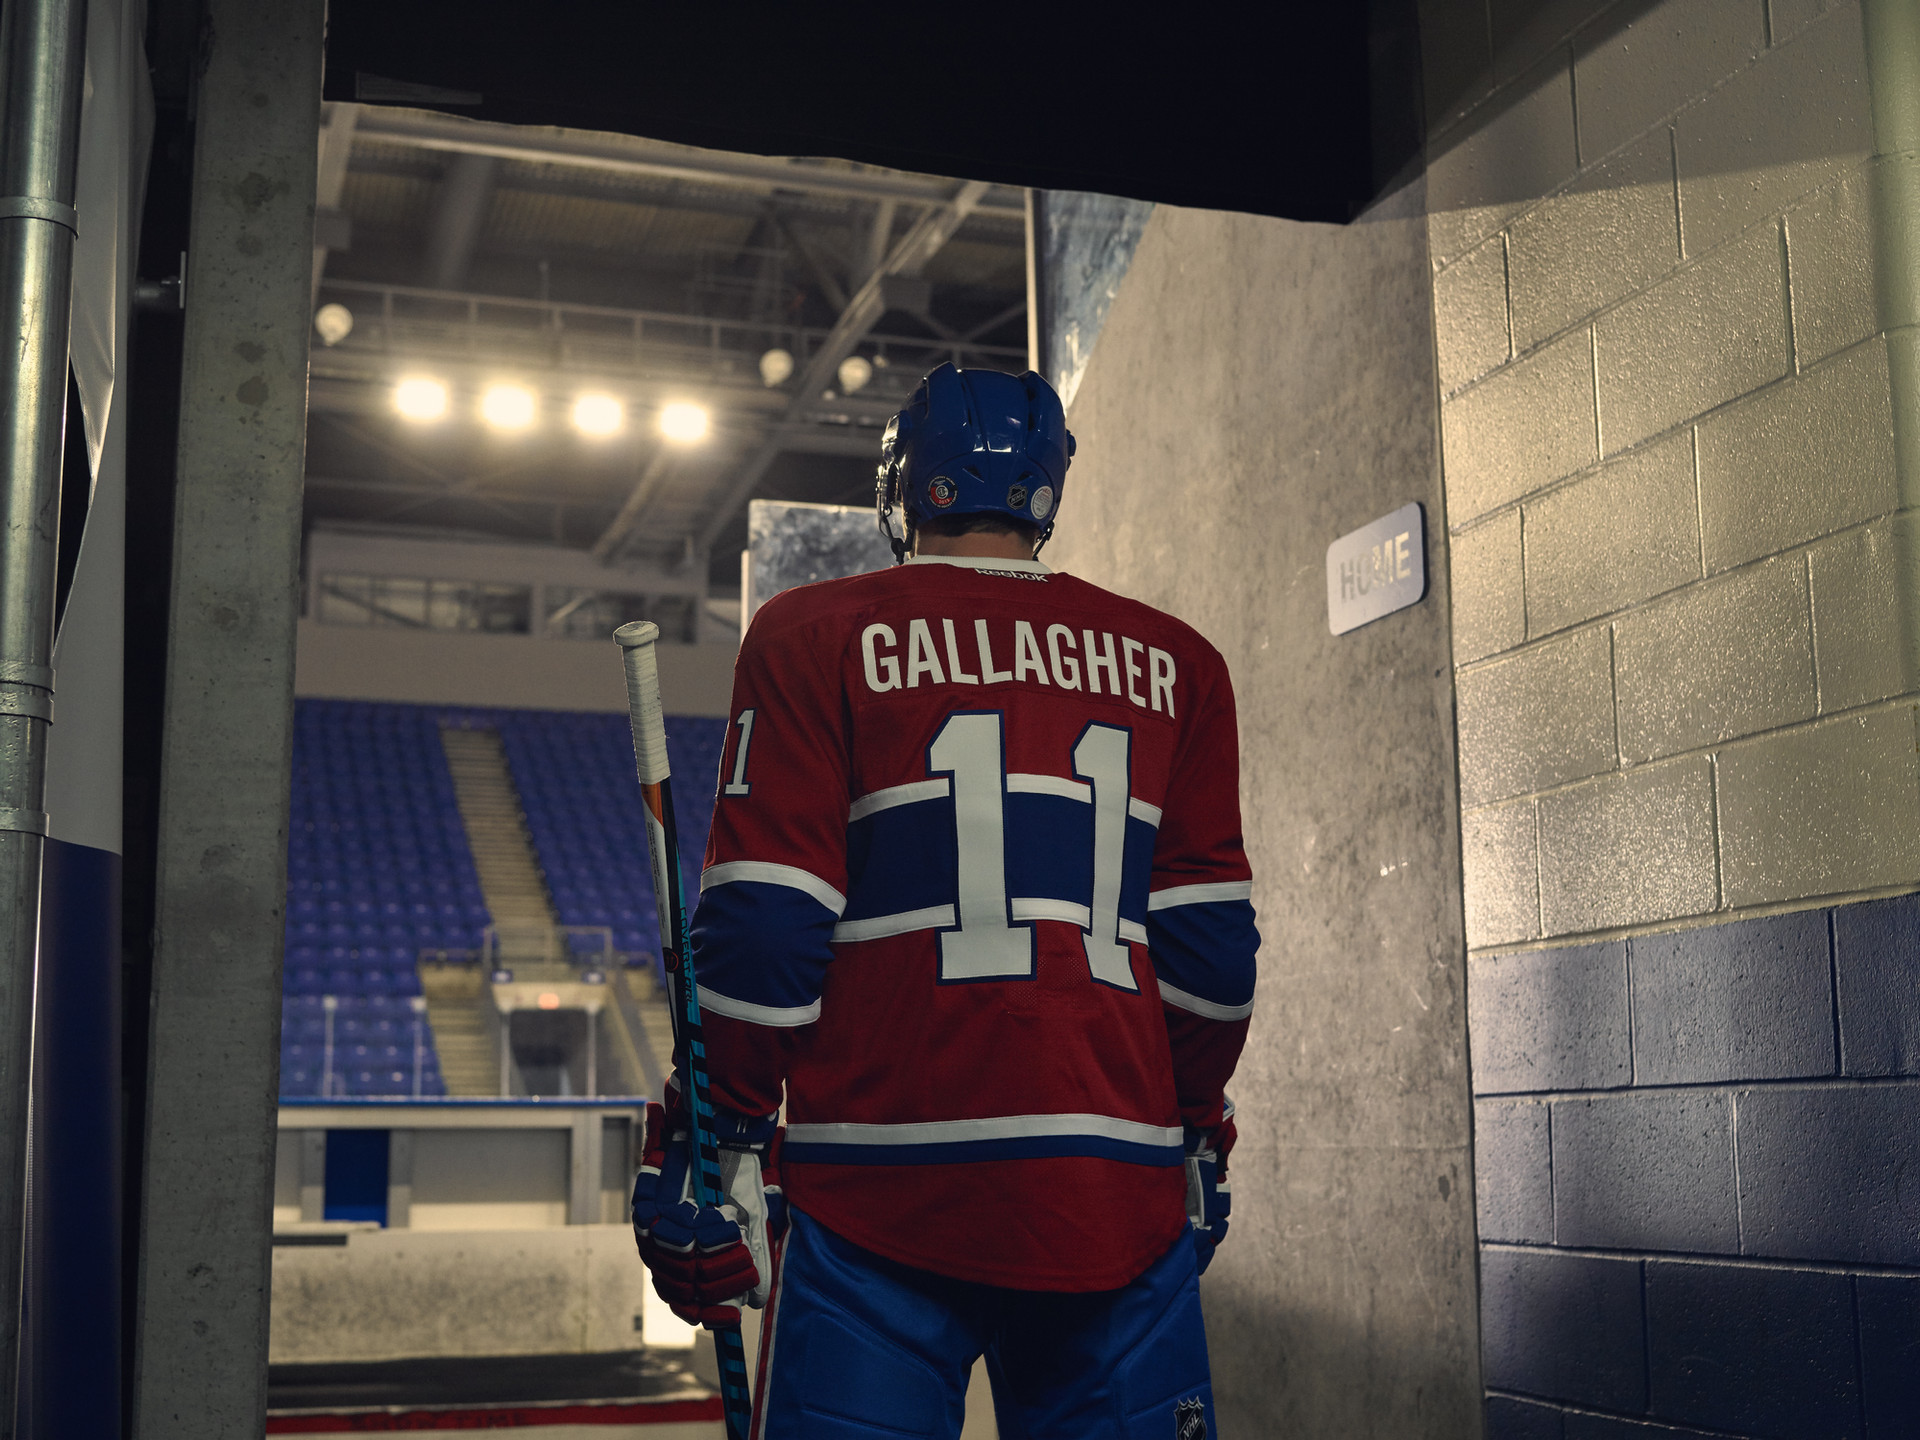 Brendan-Gallagher_web_size2.JPG